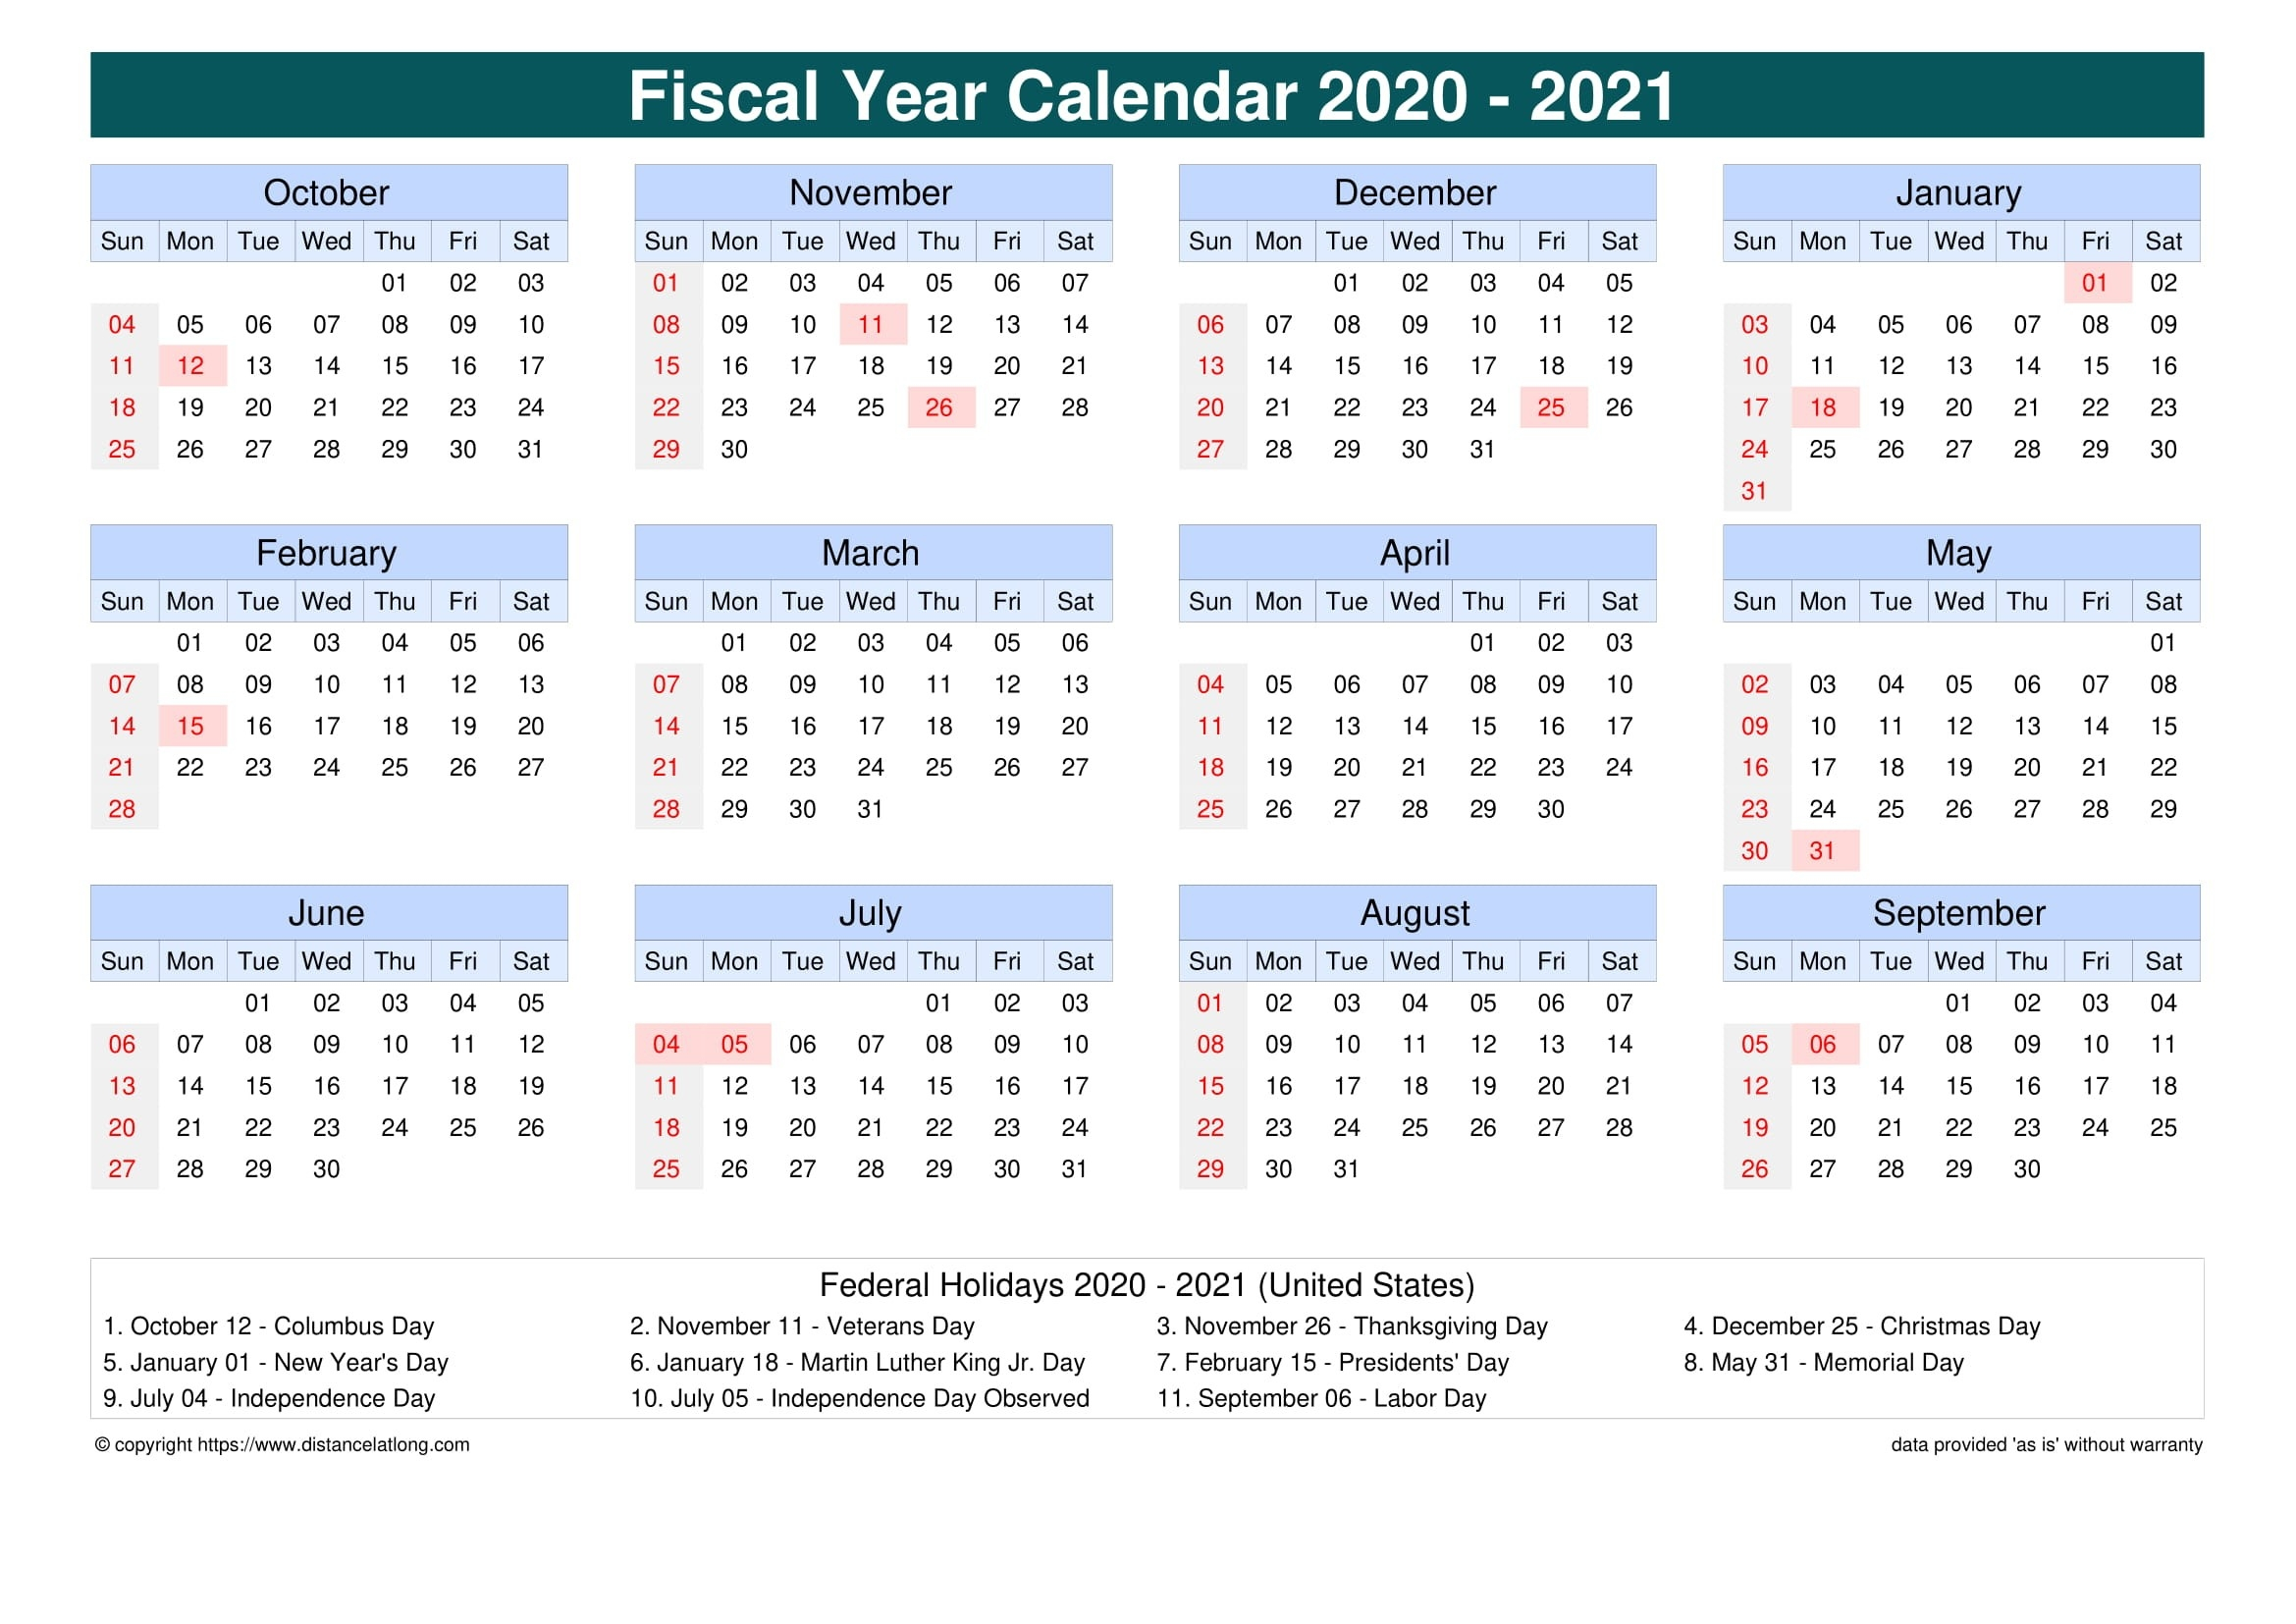 Fiscal Year 2020-2021 Calendar Templates, Free Printable  Financial Year Calendar 2020 2021